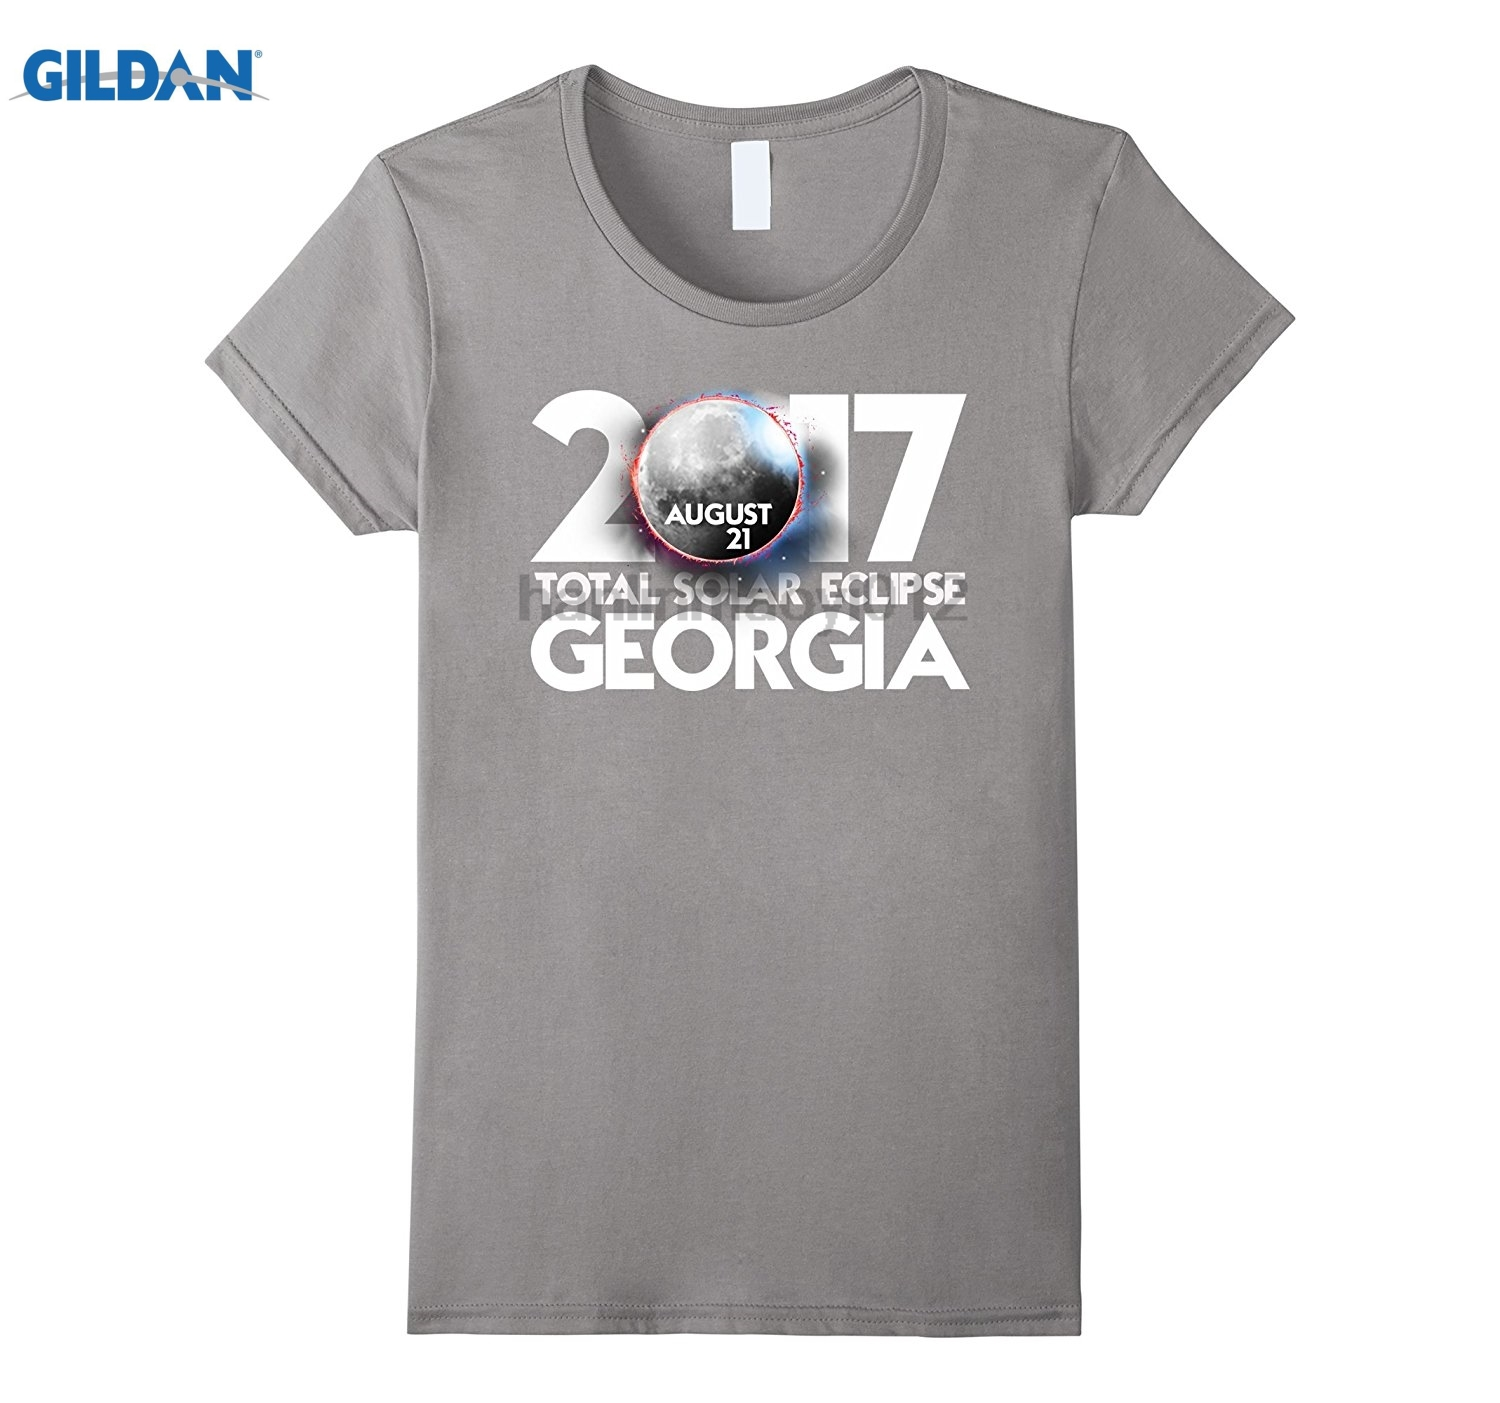 GILDAN Solar Eclipse Georgia 2017 Totality Shirt glasses Womens T-shirt